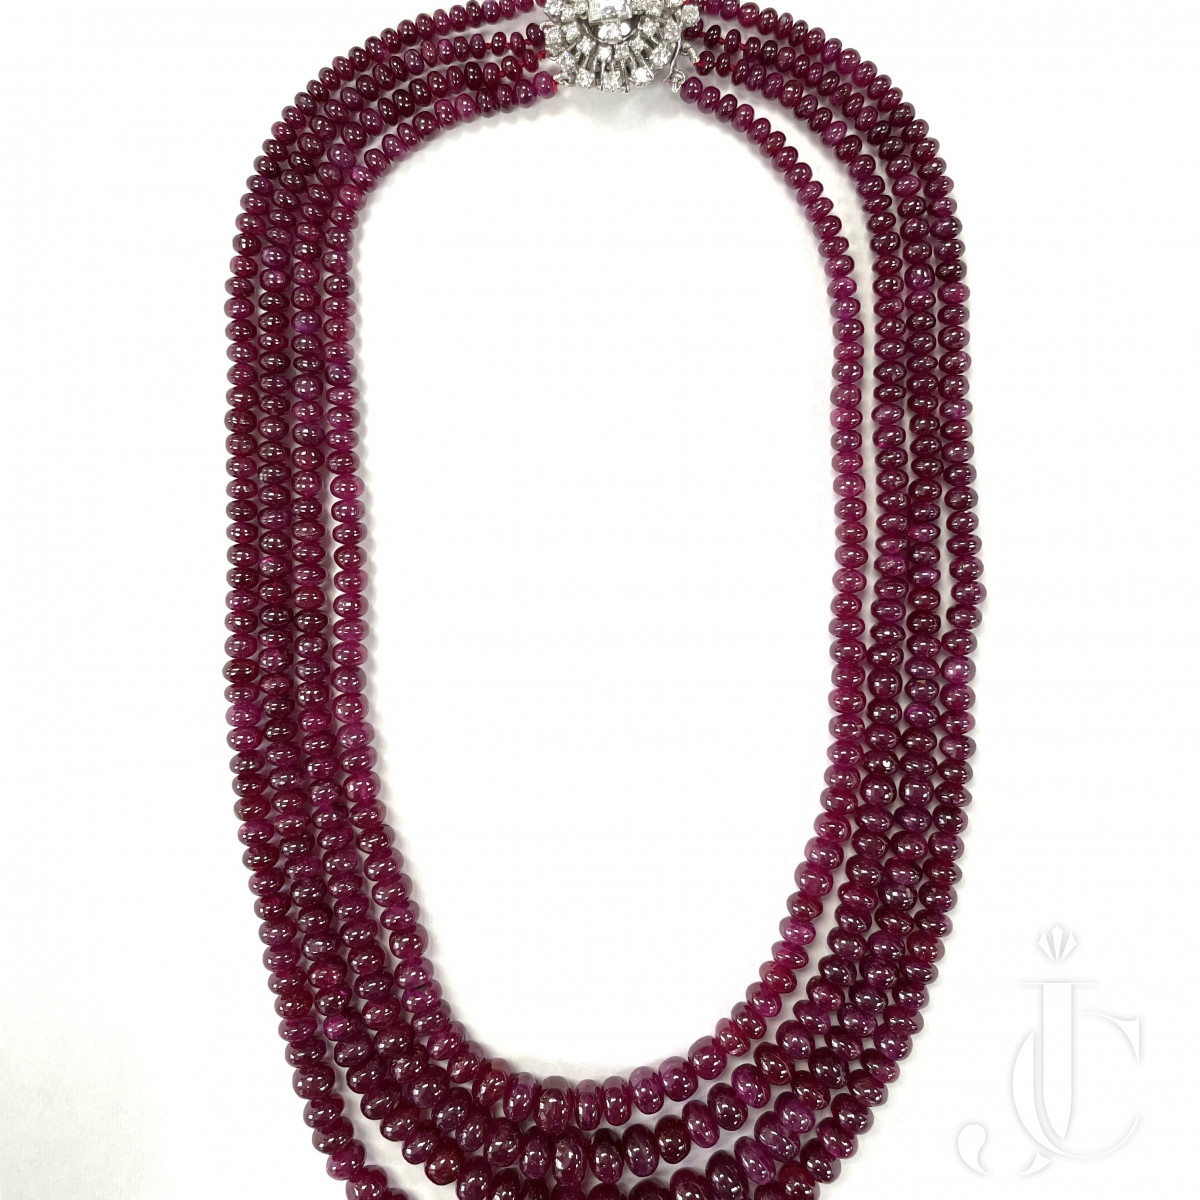 4 strands of 788 carats Burma Ruby NH beads with a Diamond clasp